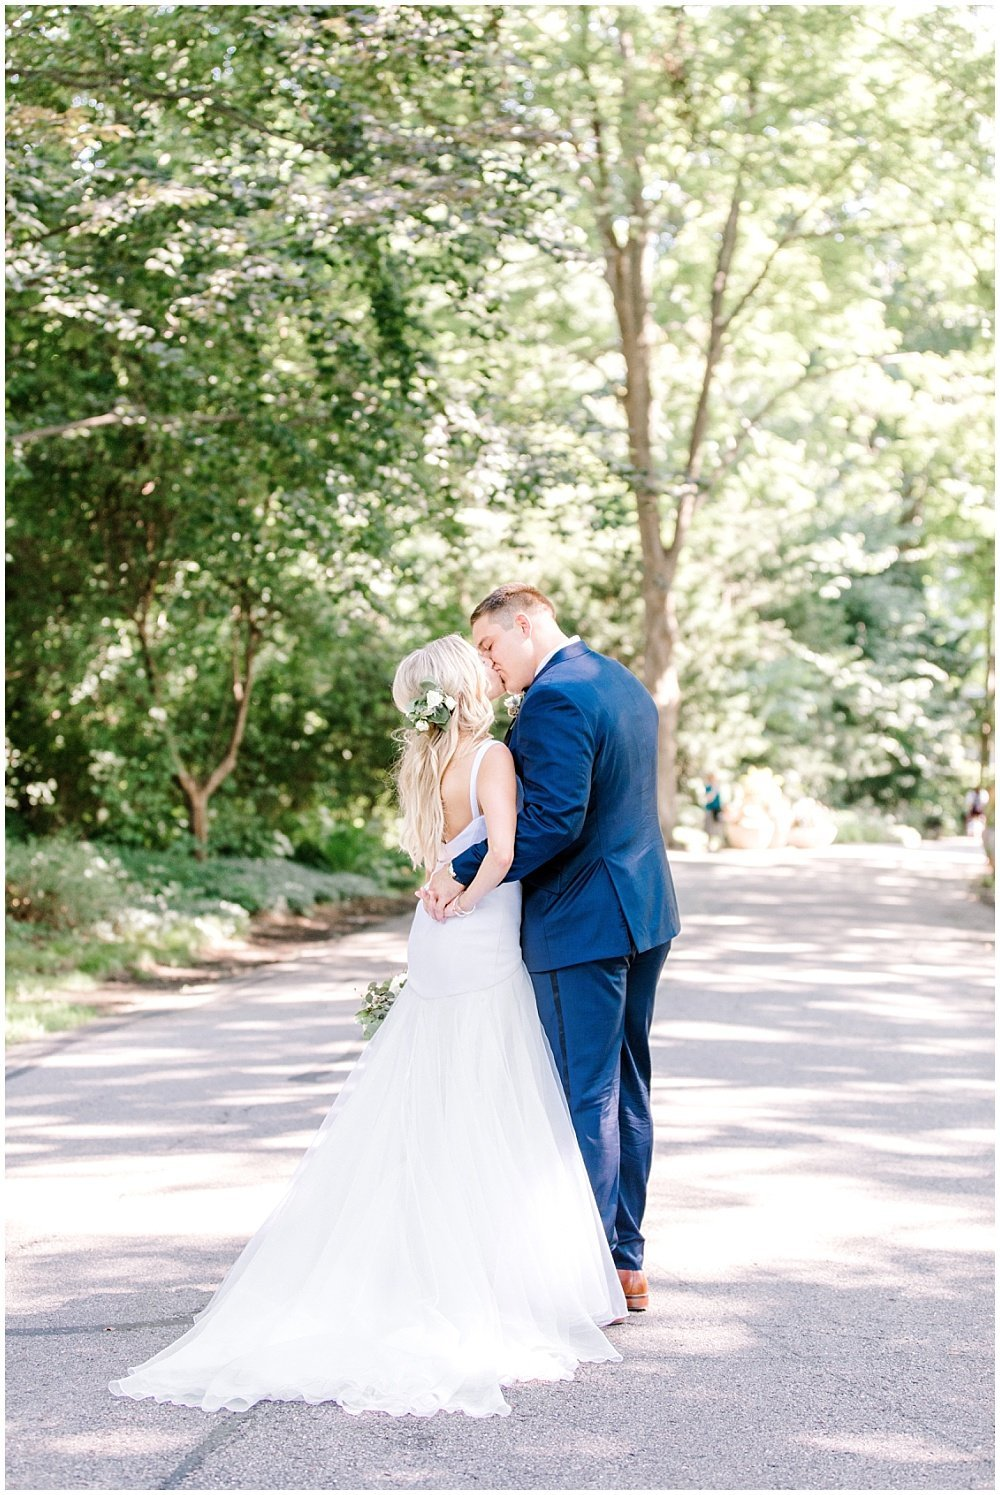 NFL-Player-Nick-Martin-Indianapolis-Indiana-Wedding-The-Knot-Featured-Jessica-Dum-Wedding-Coordination-photo__0019